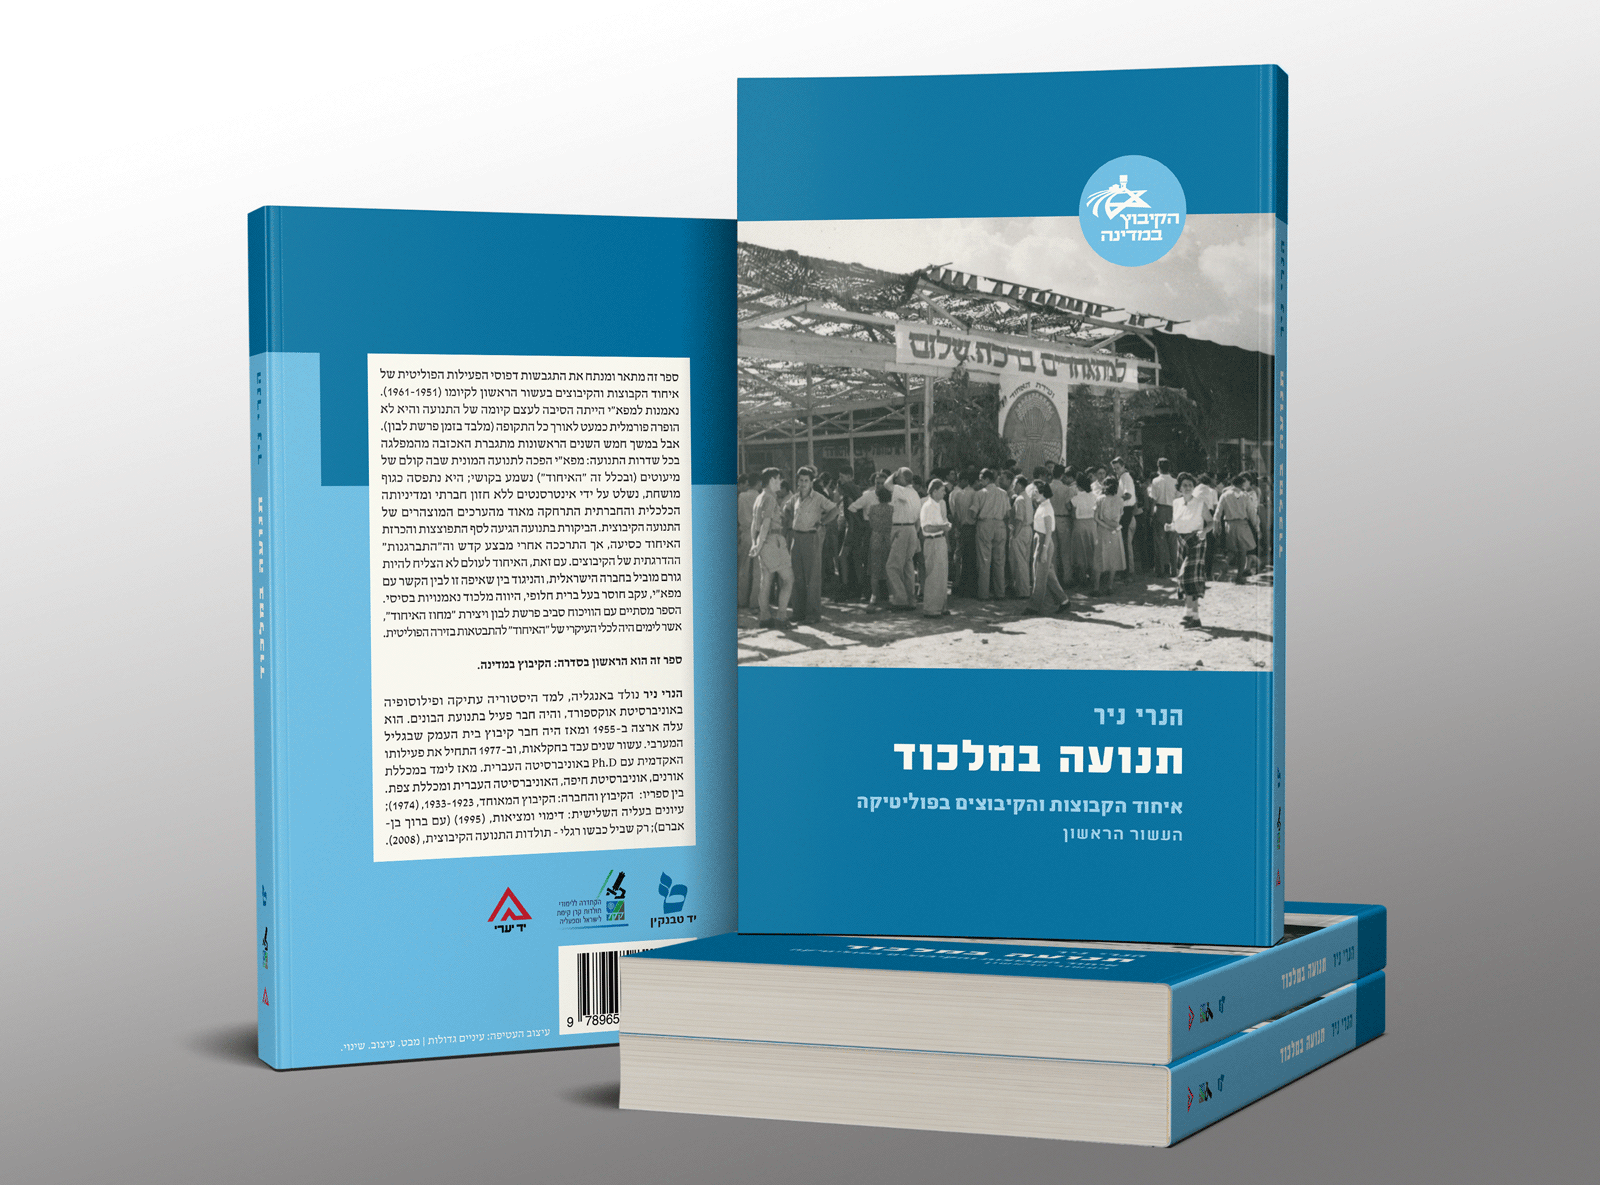 https://bigeyes.co.il/wp-content/uploads/2019/08/kibbutz-books-1.png